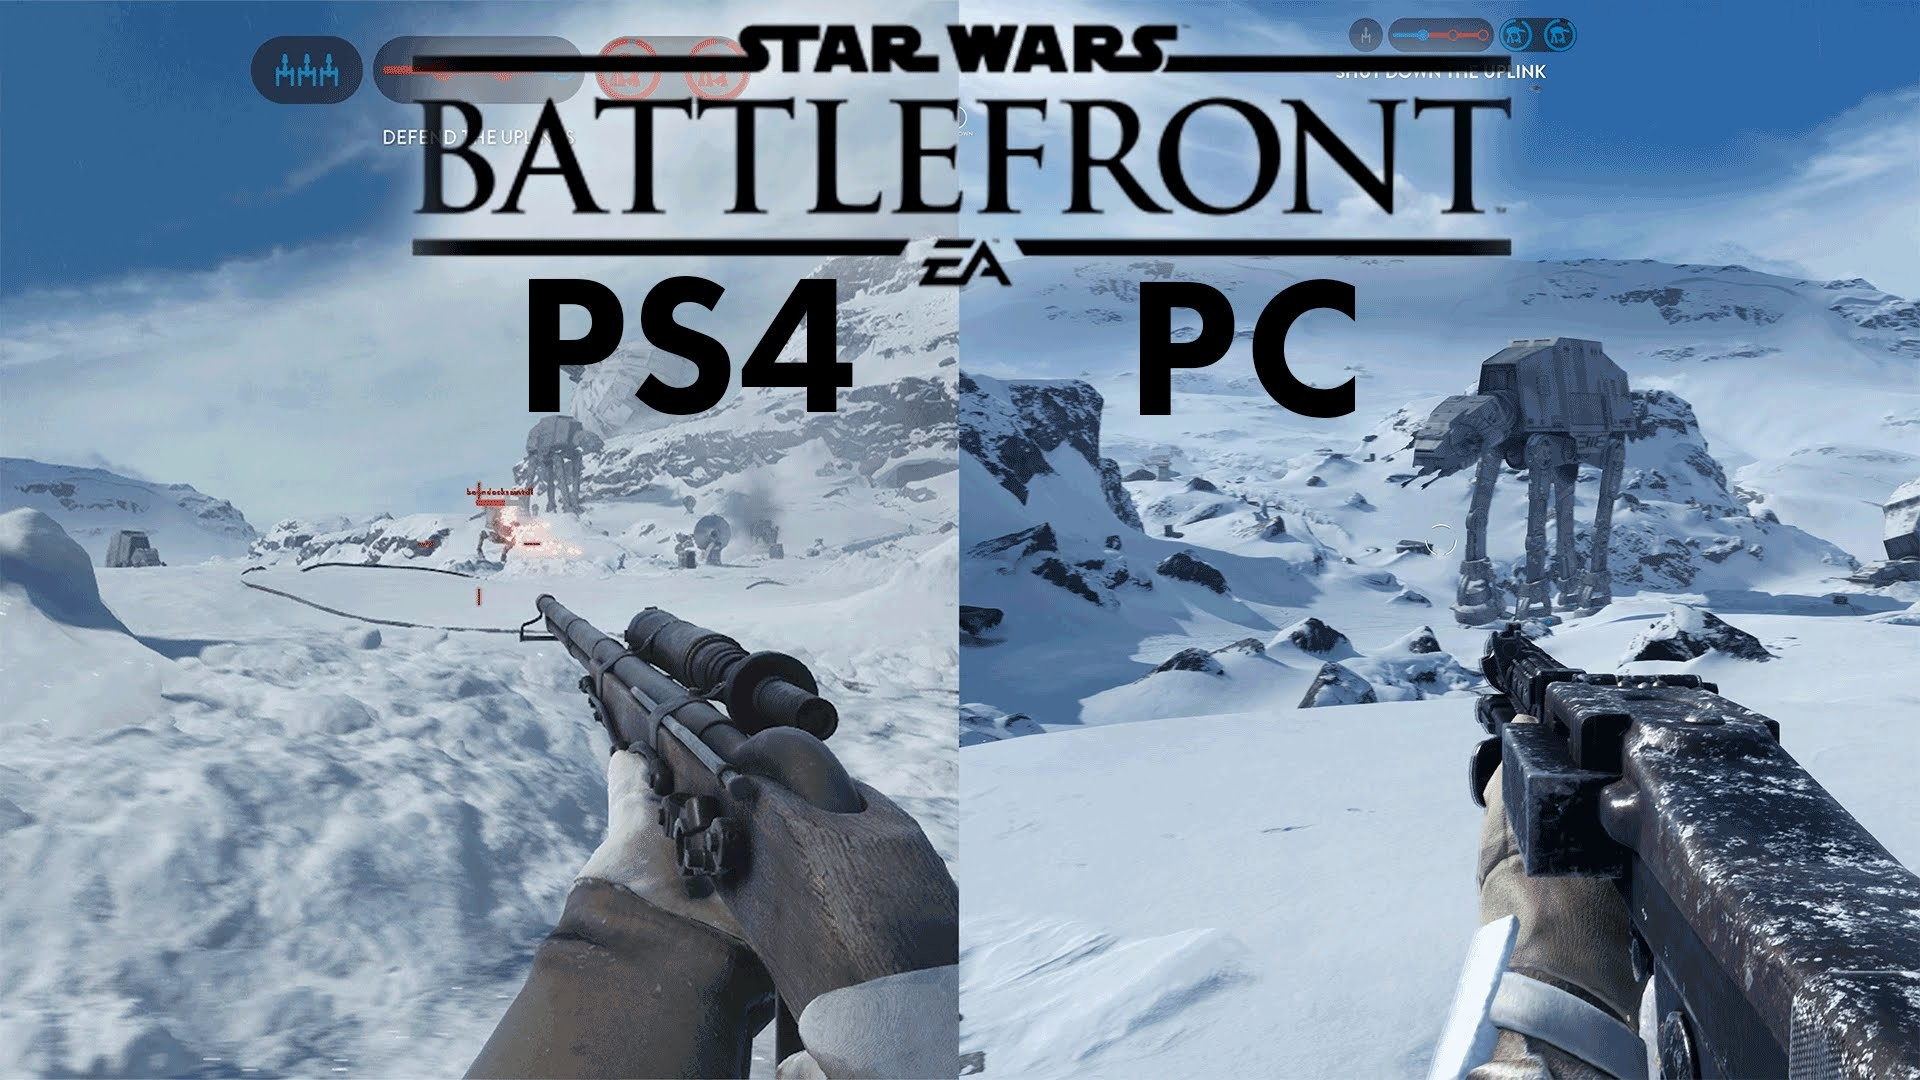 1920x1080 Star Wars Battlefront BETA | PC vs PS4 | 4k vs 1080p ULTRA Gameplay  Comparison - YouTube